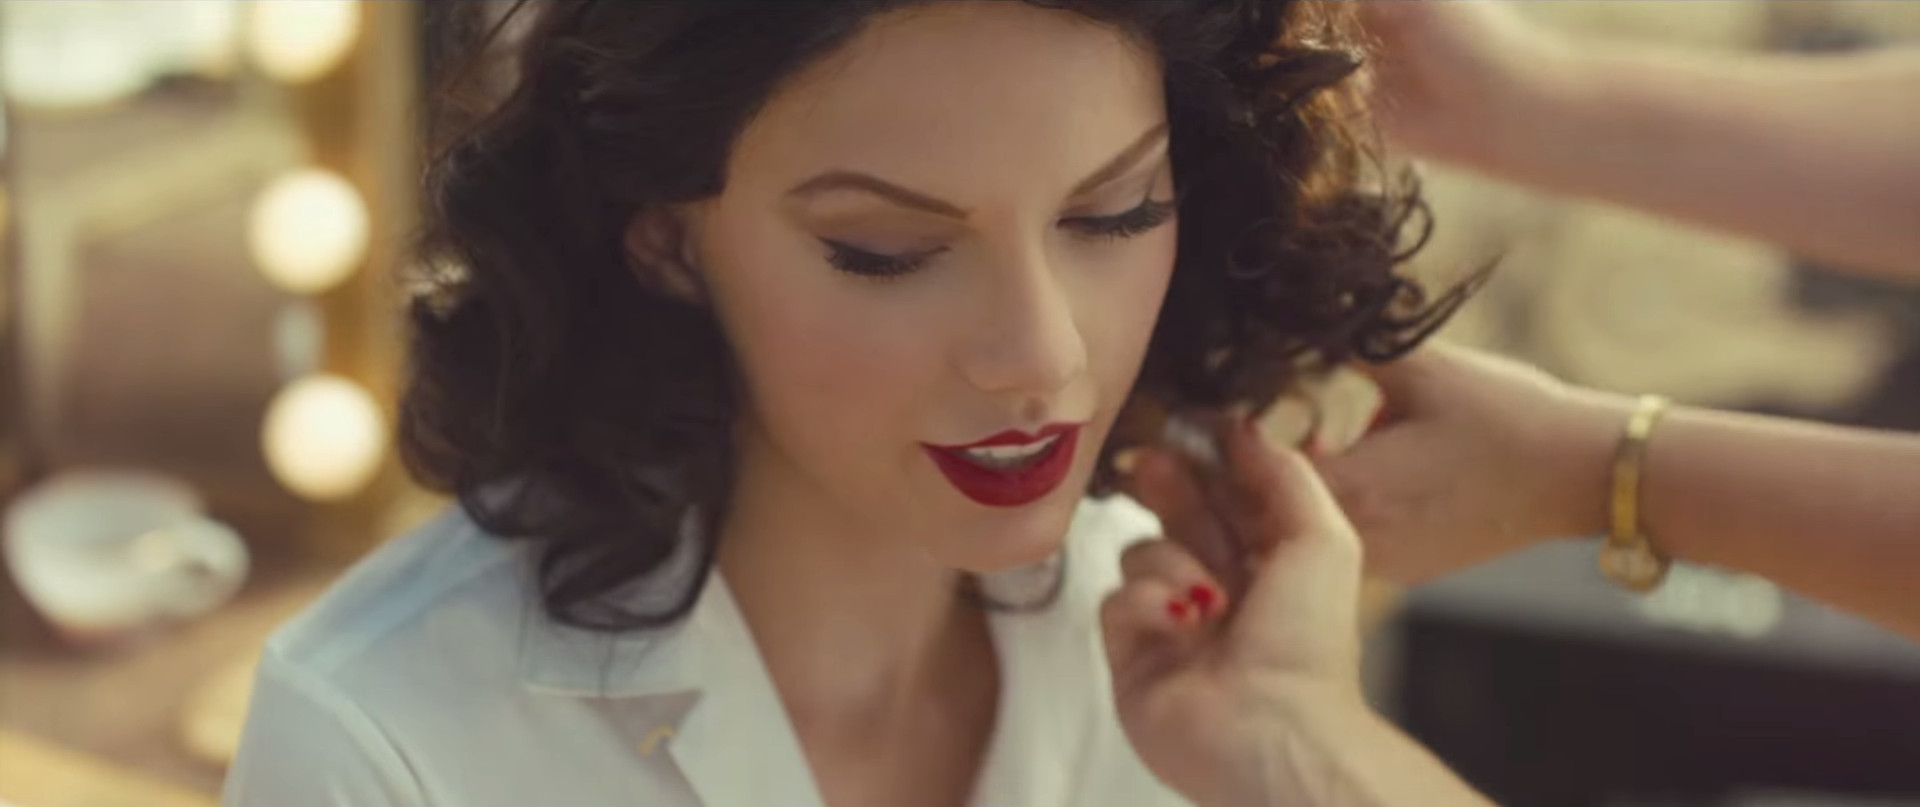 """Taylor Swift flaunting her 'red lipstick' style in """"Wildest Dreams"""" music video (Image: livingly.com)"""